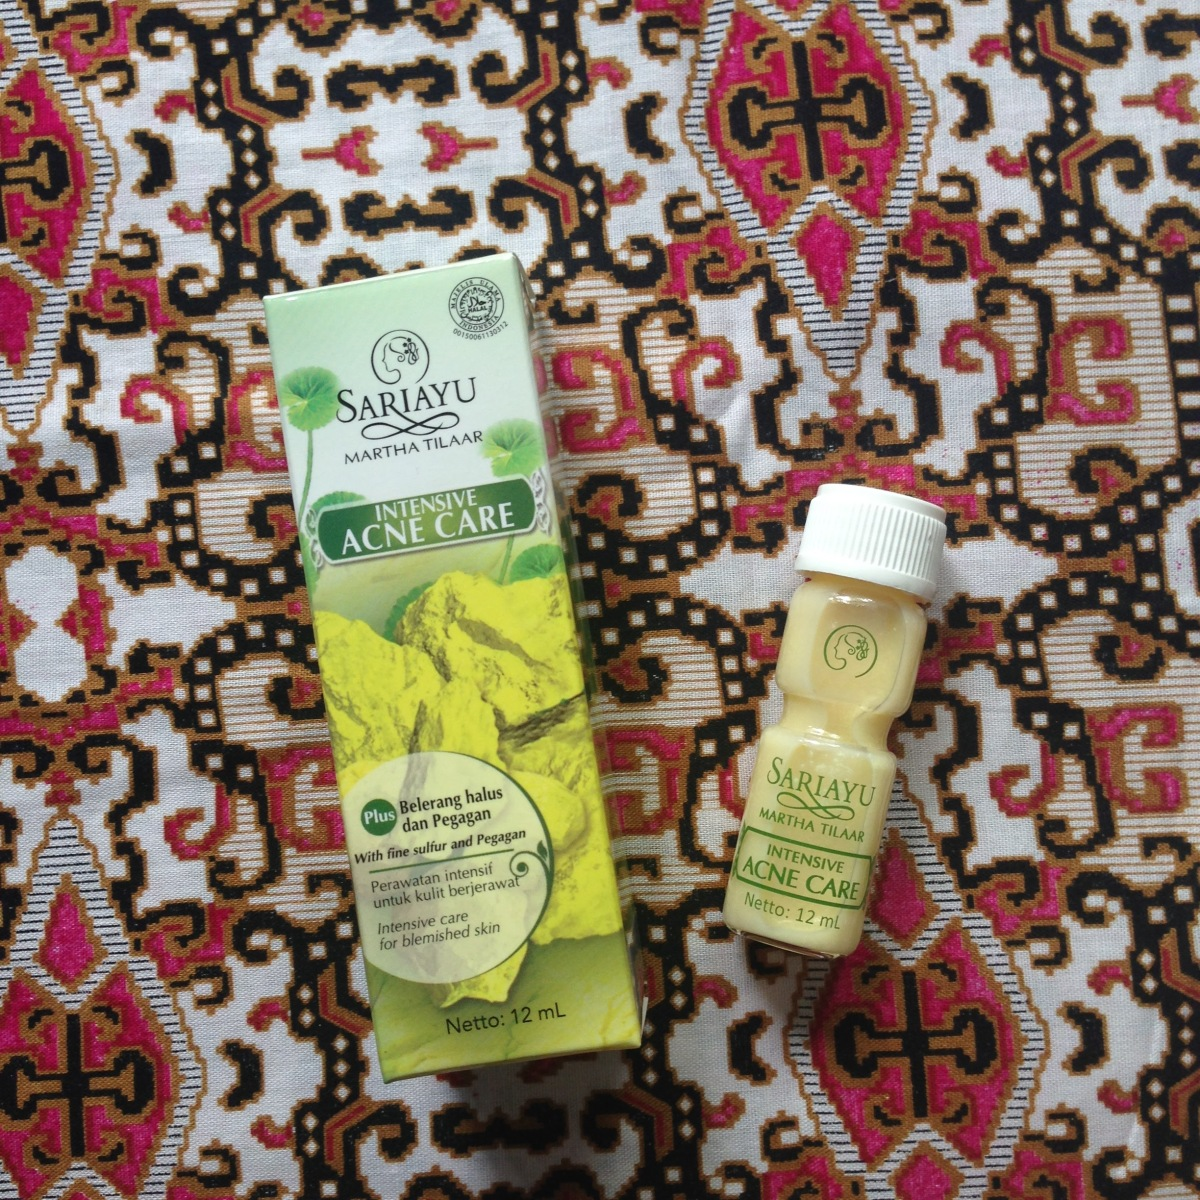 Sariayu Intensive Acne Care (Skin Care Review)